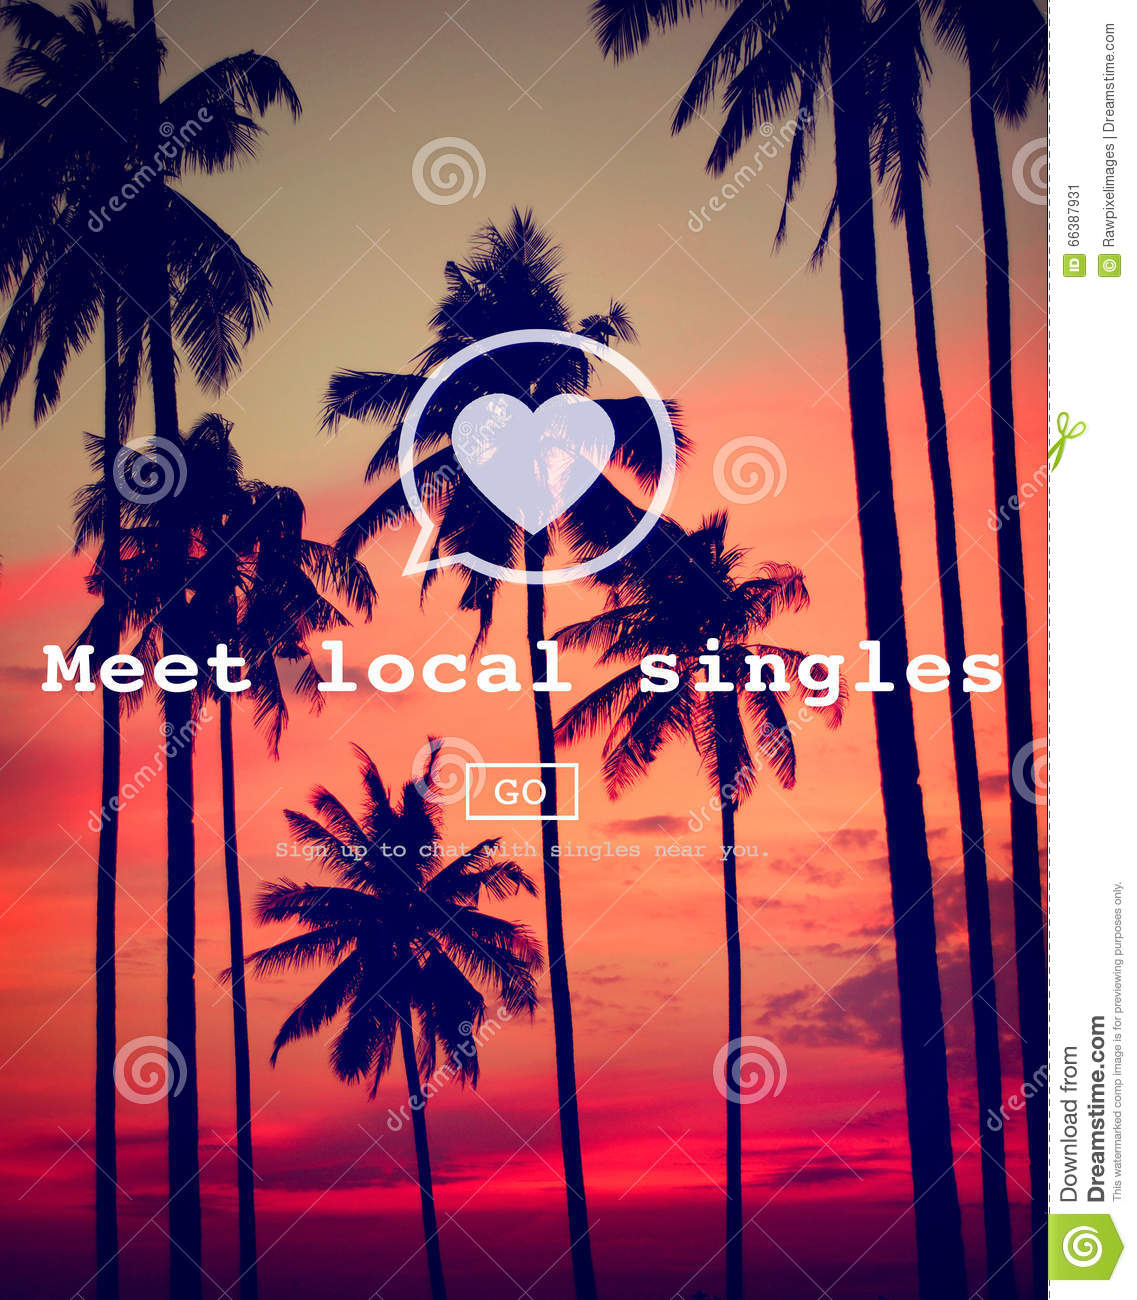 meet south heart singles Dc dating with elitesingles washington dc singles seeking a  when you're ready to meet one of our dc singles,  (all handmade right in the heart of.